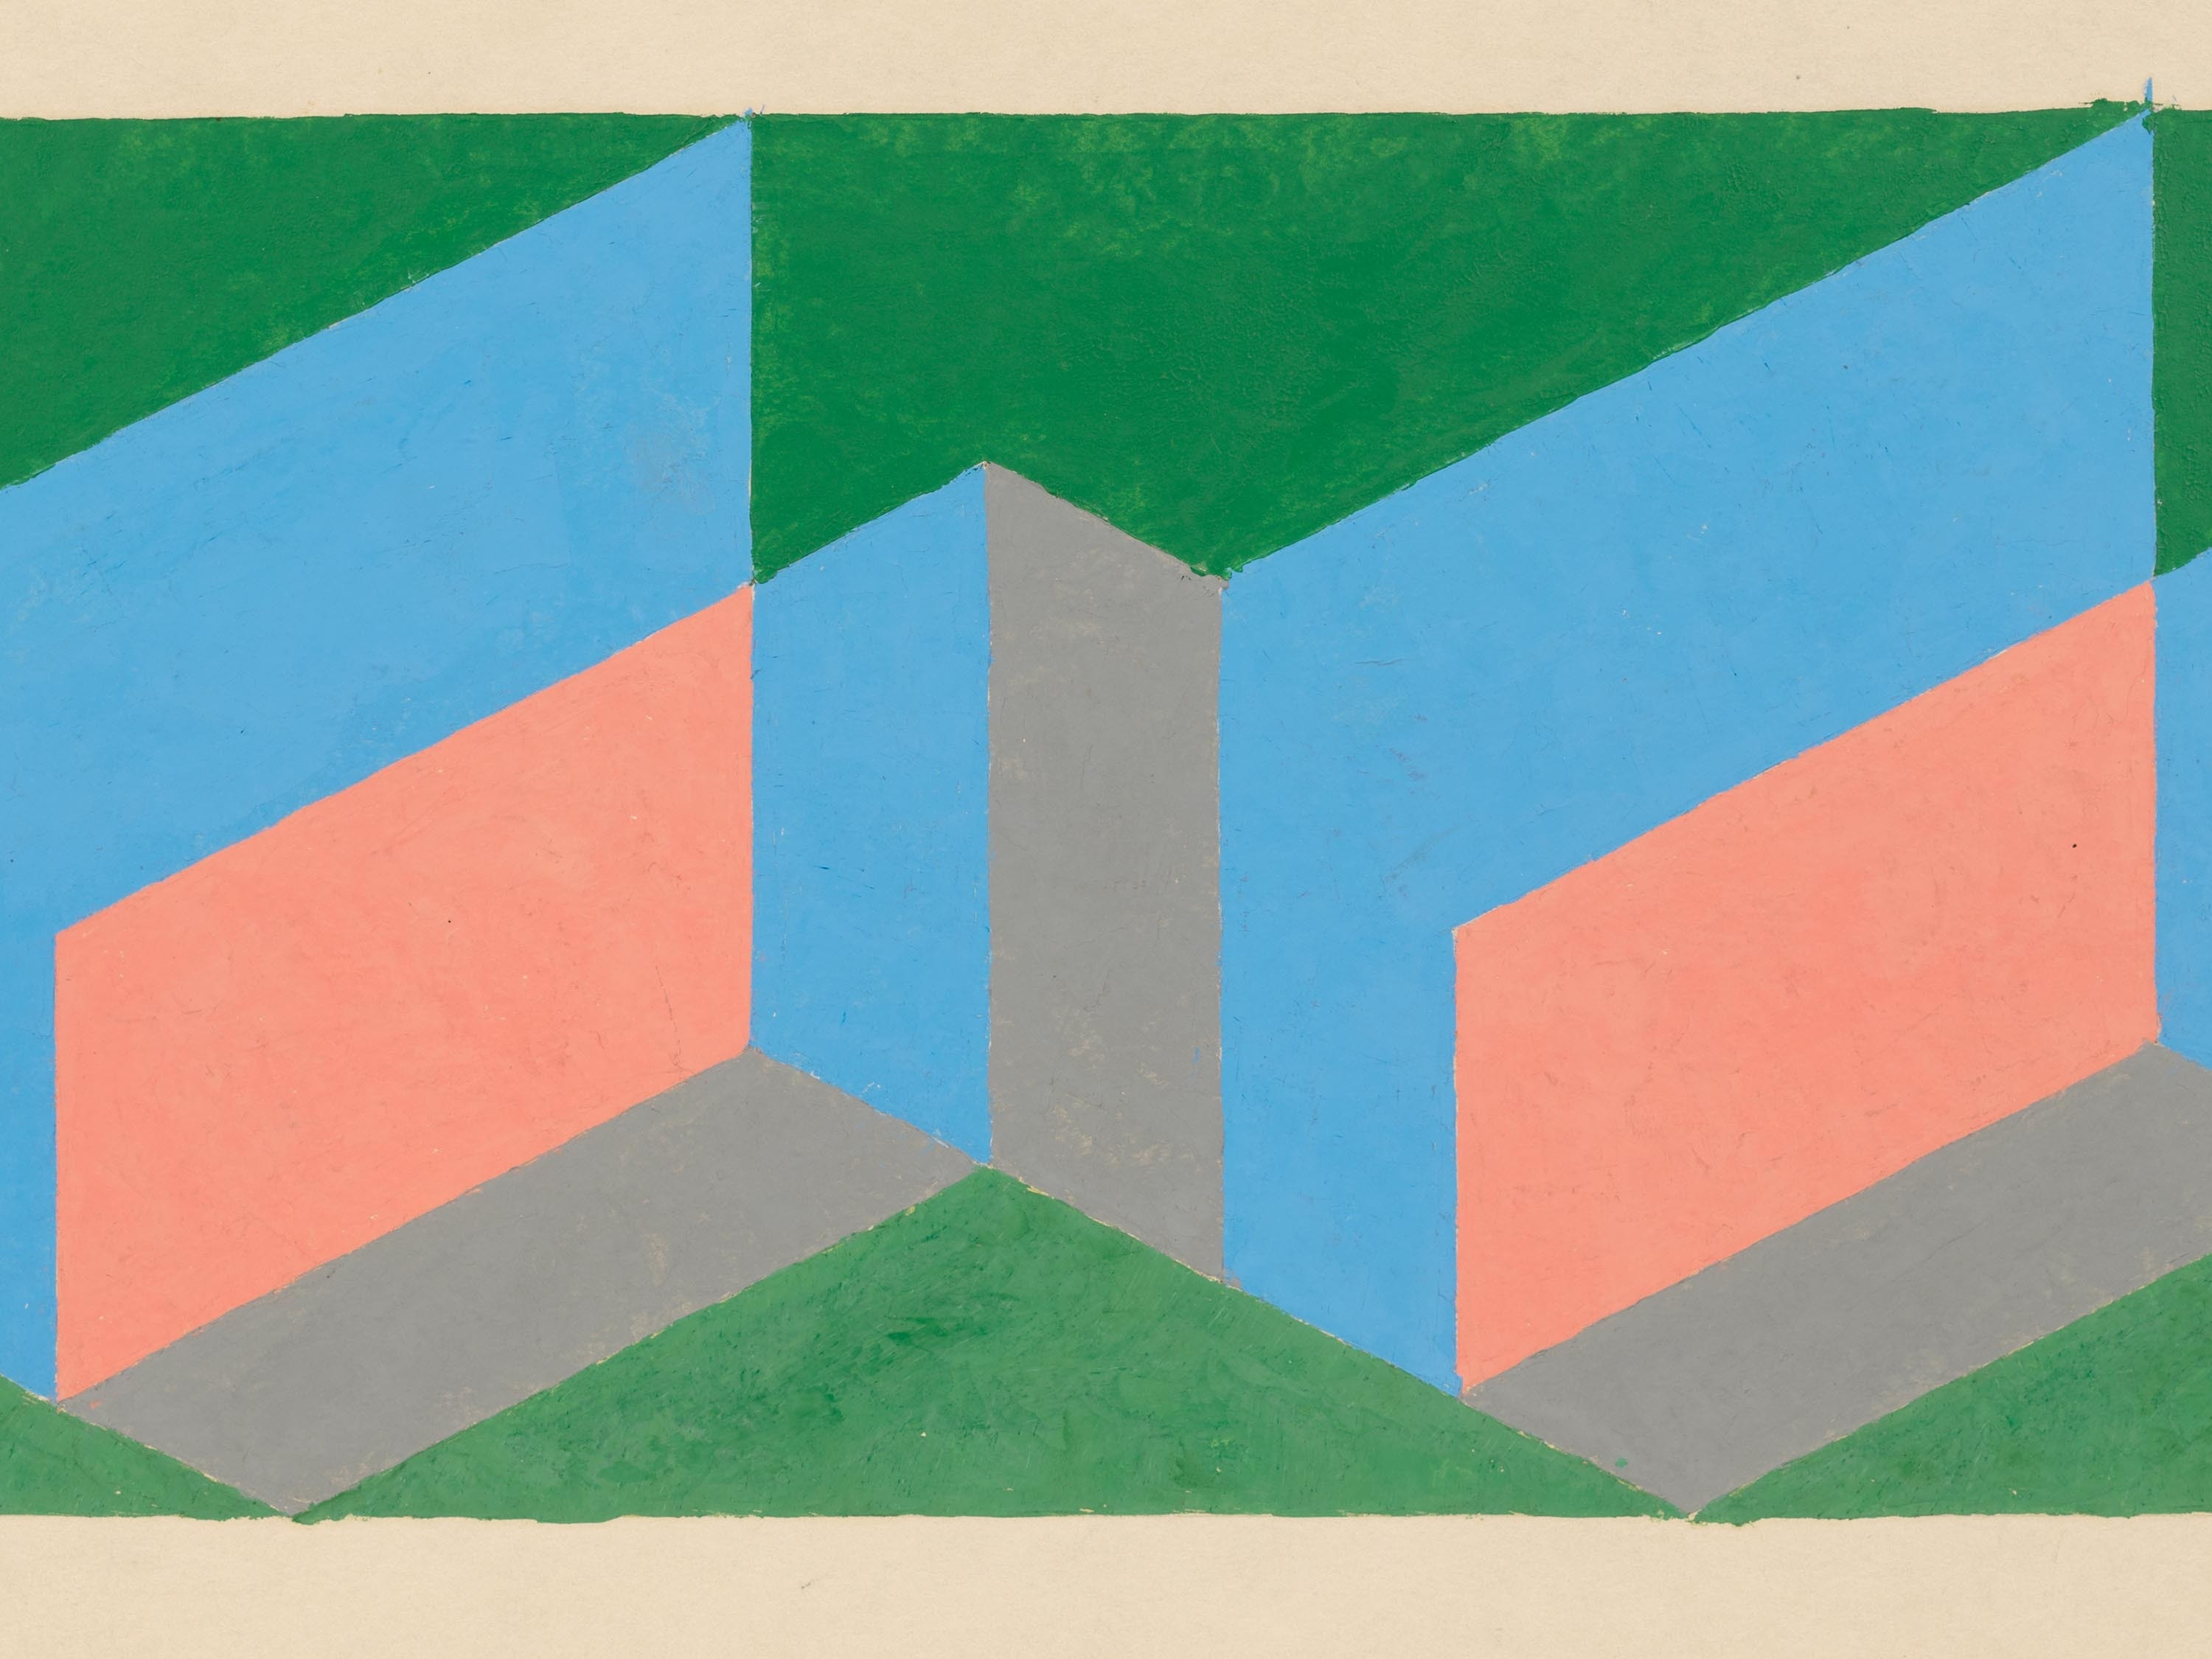 A detail from the work titled Study for Tautonym by Josef Albers, dated 1944